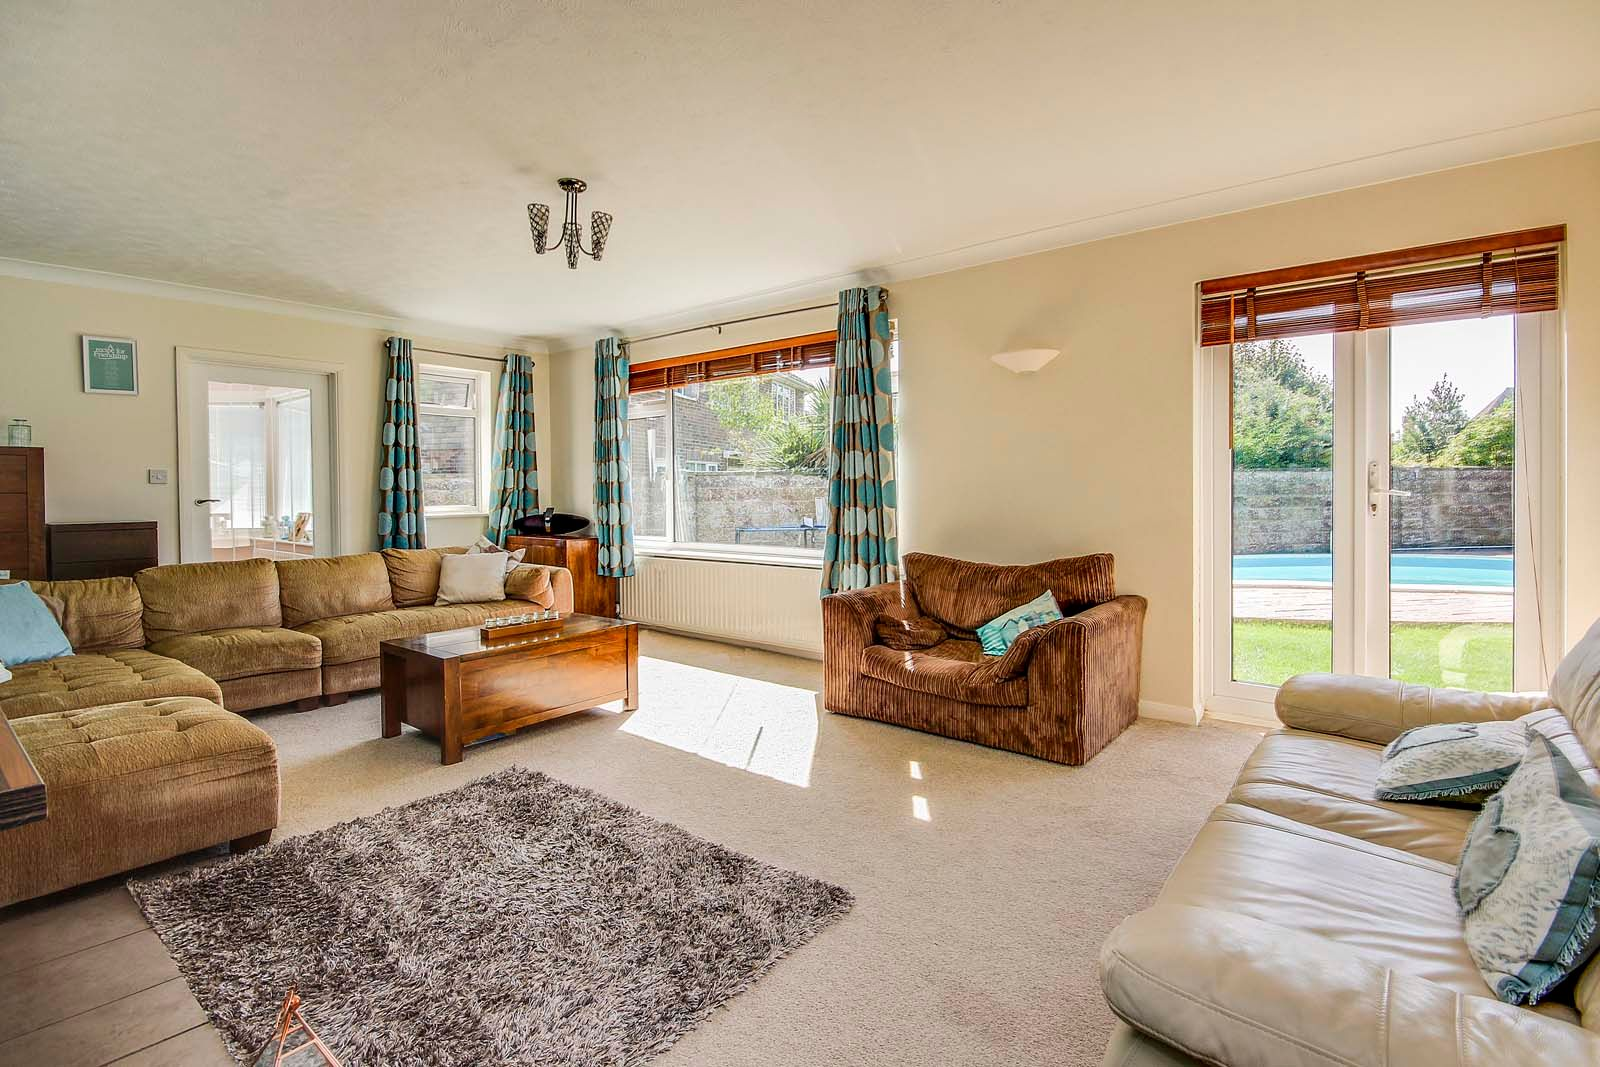 4 bed House for sale in Rustington - Sitting room (Property Image 3)